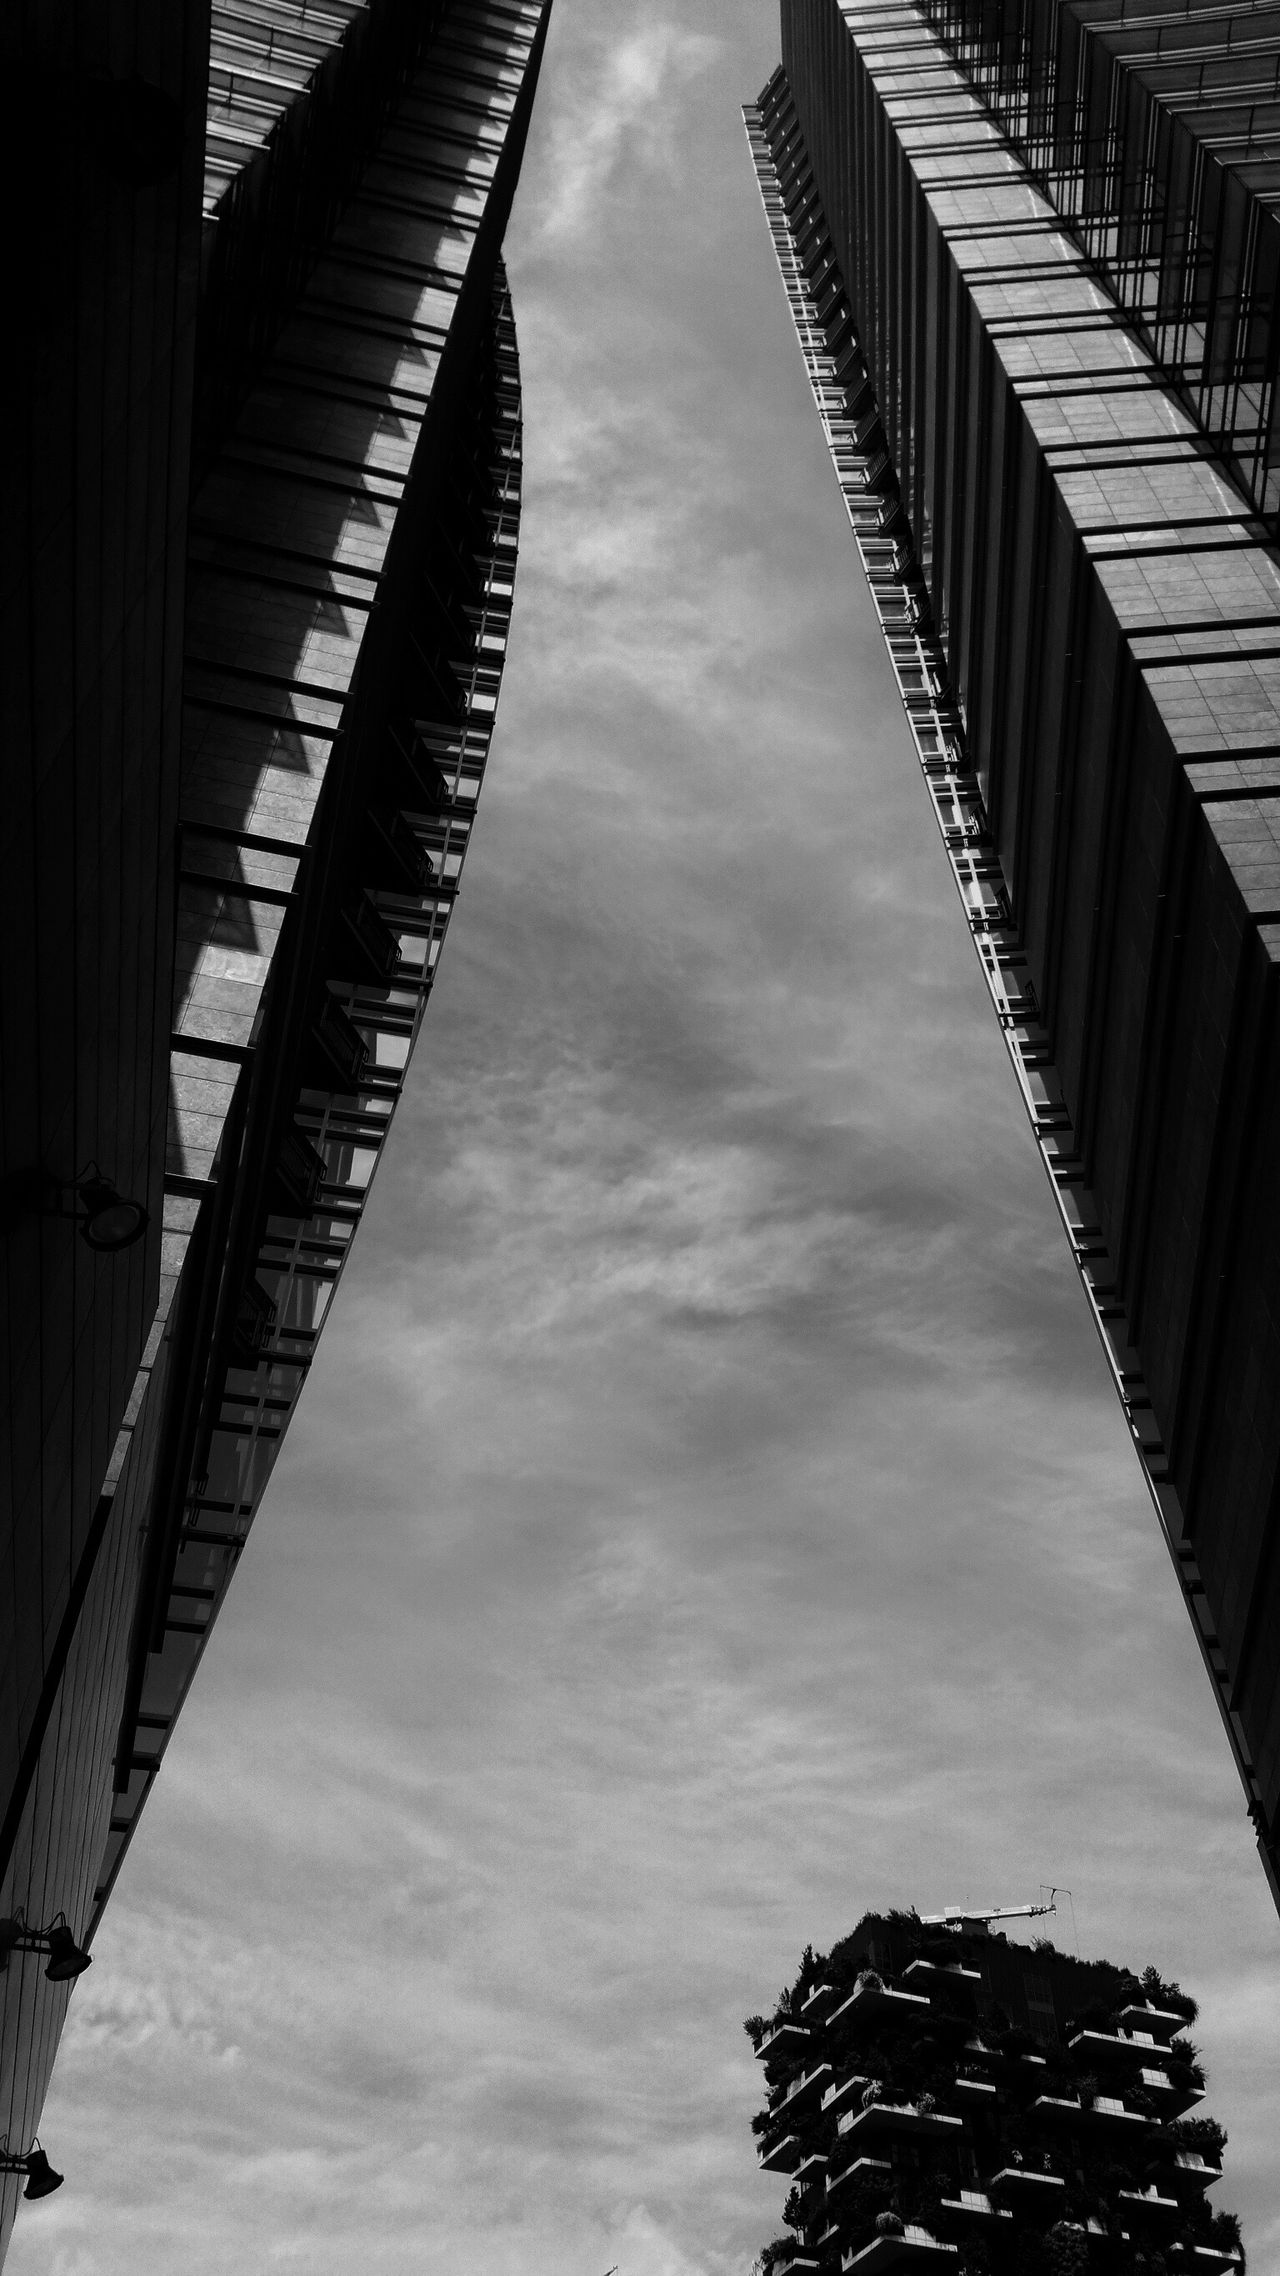 Looking up Sky Low Angle View Cloud - Sky Building Exterior Architecture No People Streetphotography Perspective City Milano Skyscrapers Architecture Black And White Photography Building Cityscape Lookingup Low Angle View Minimalist Architecture Monochrome Bosco Verticale Porta Nuova High Rise EyeEmNewHere Looking Up